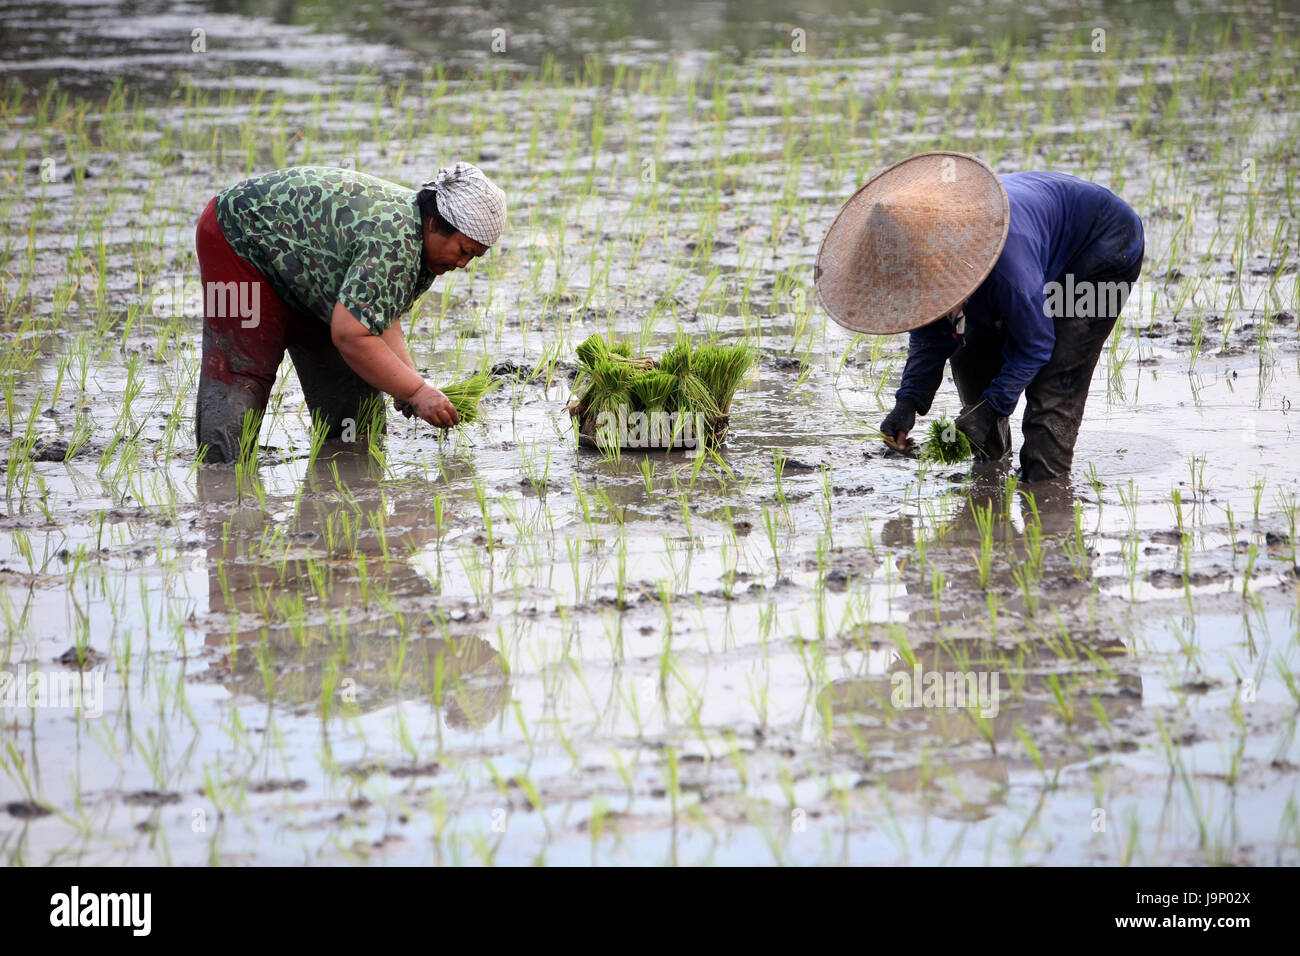 Indonesia,Bali,island,with Tegalalang,travel,field,agriculture,everyday life,economy,culture,women,Setzlinge,no - Stock Image